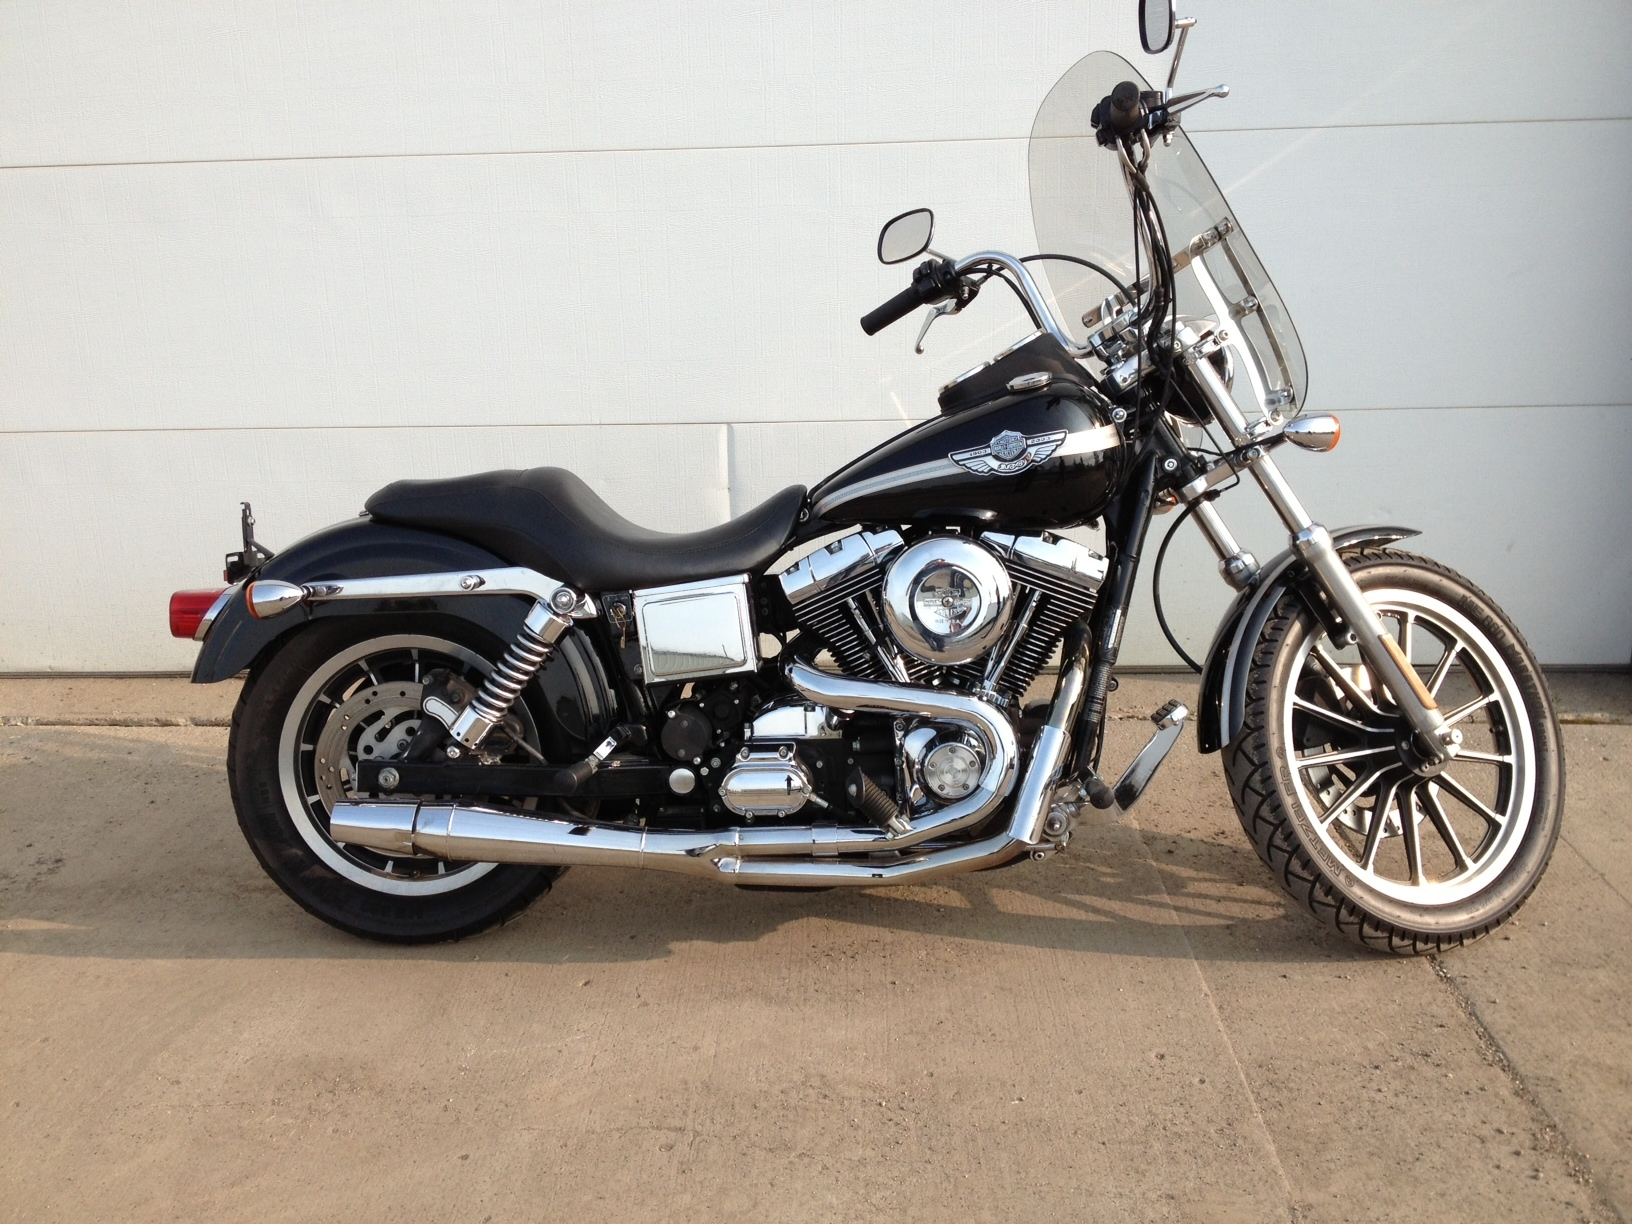 Harley-Davidson FXDL Dyna Low Rider 2003 pics #162490